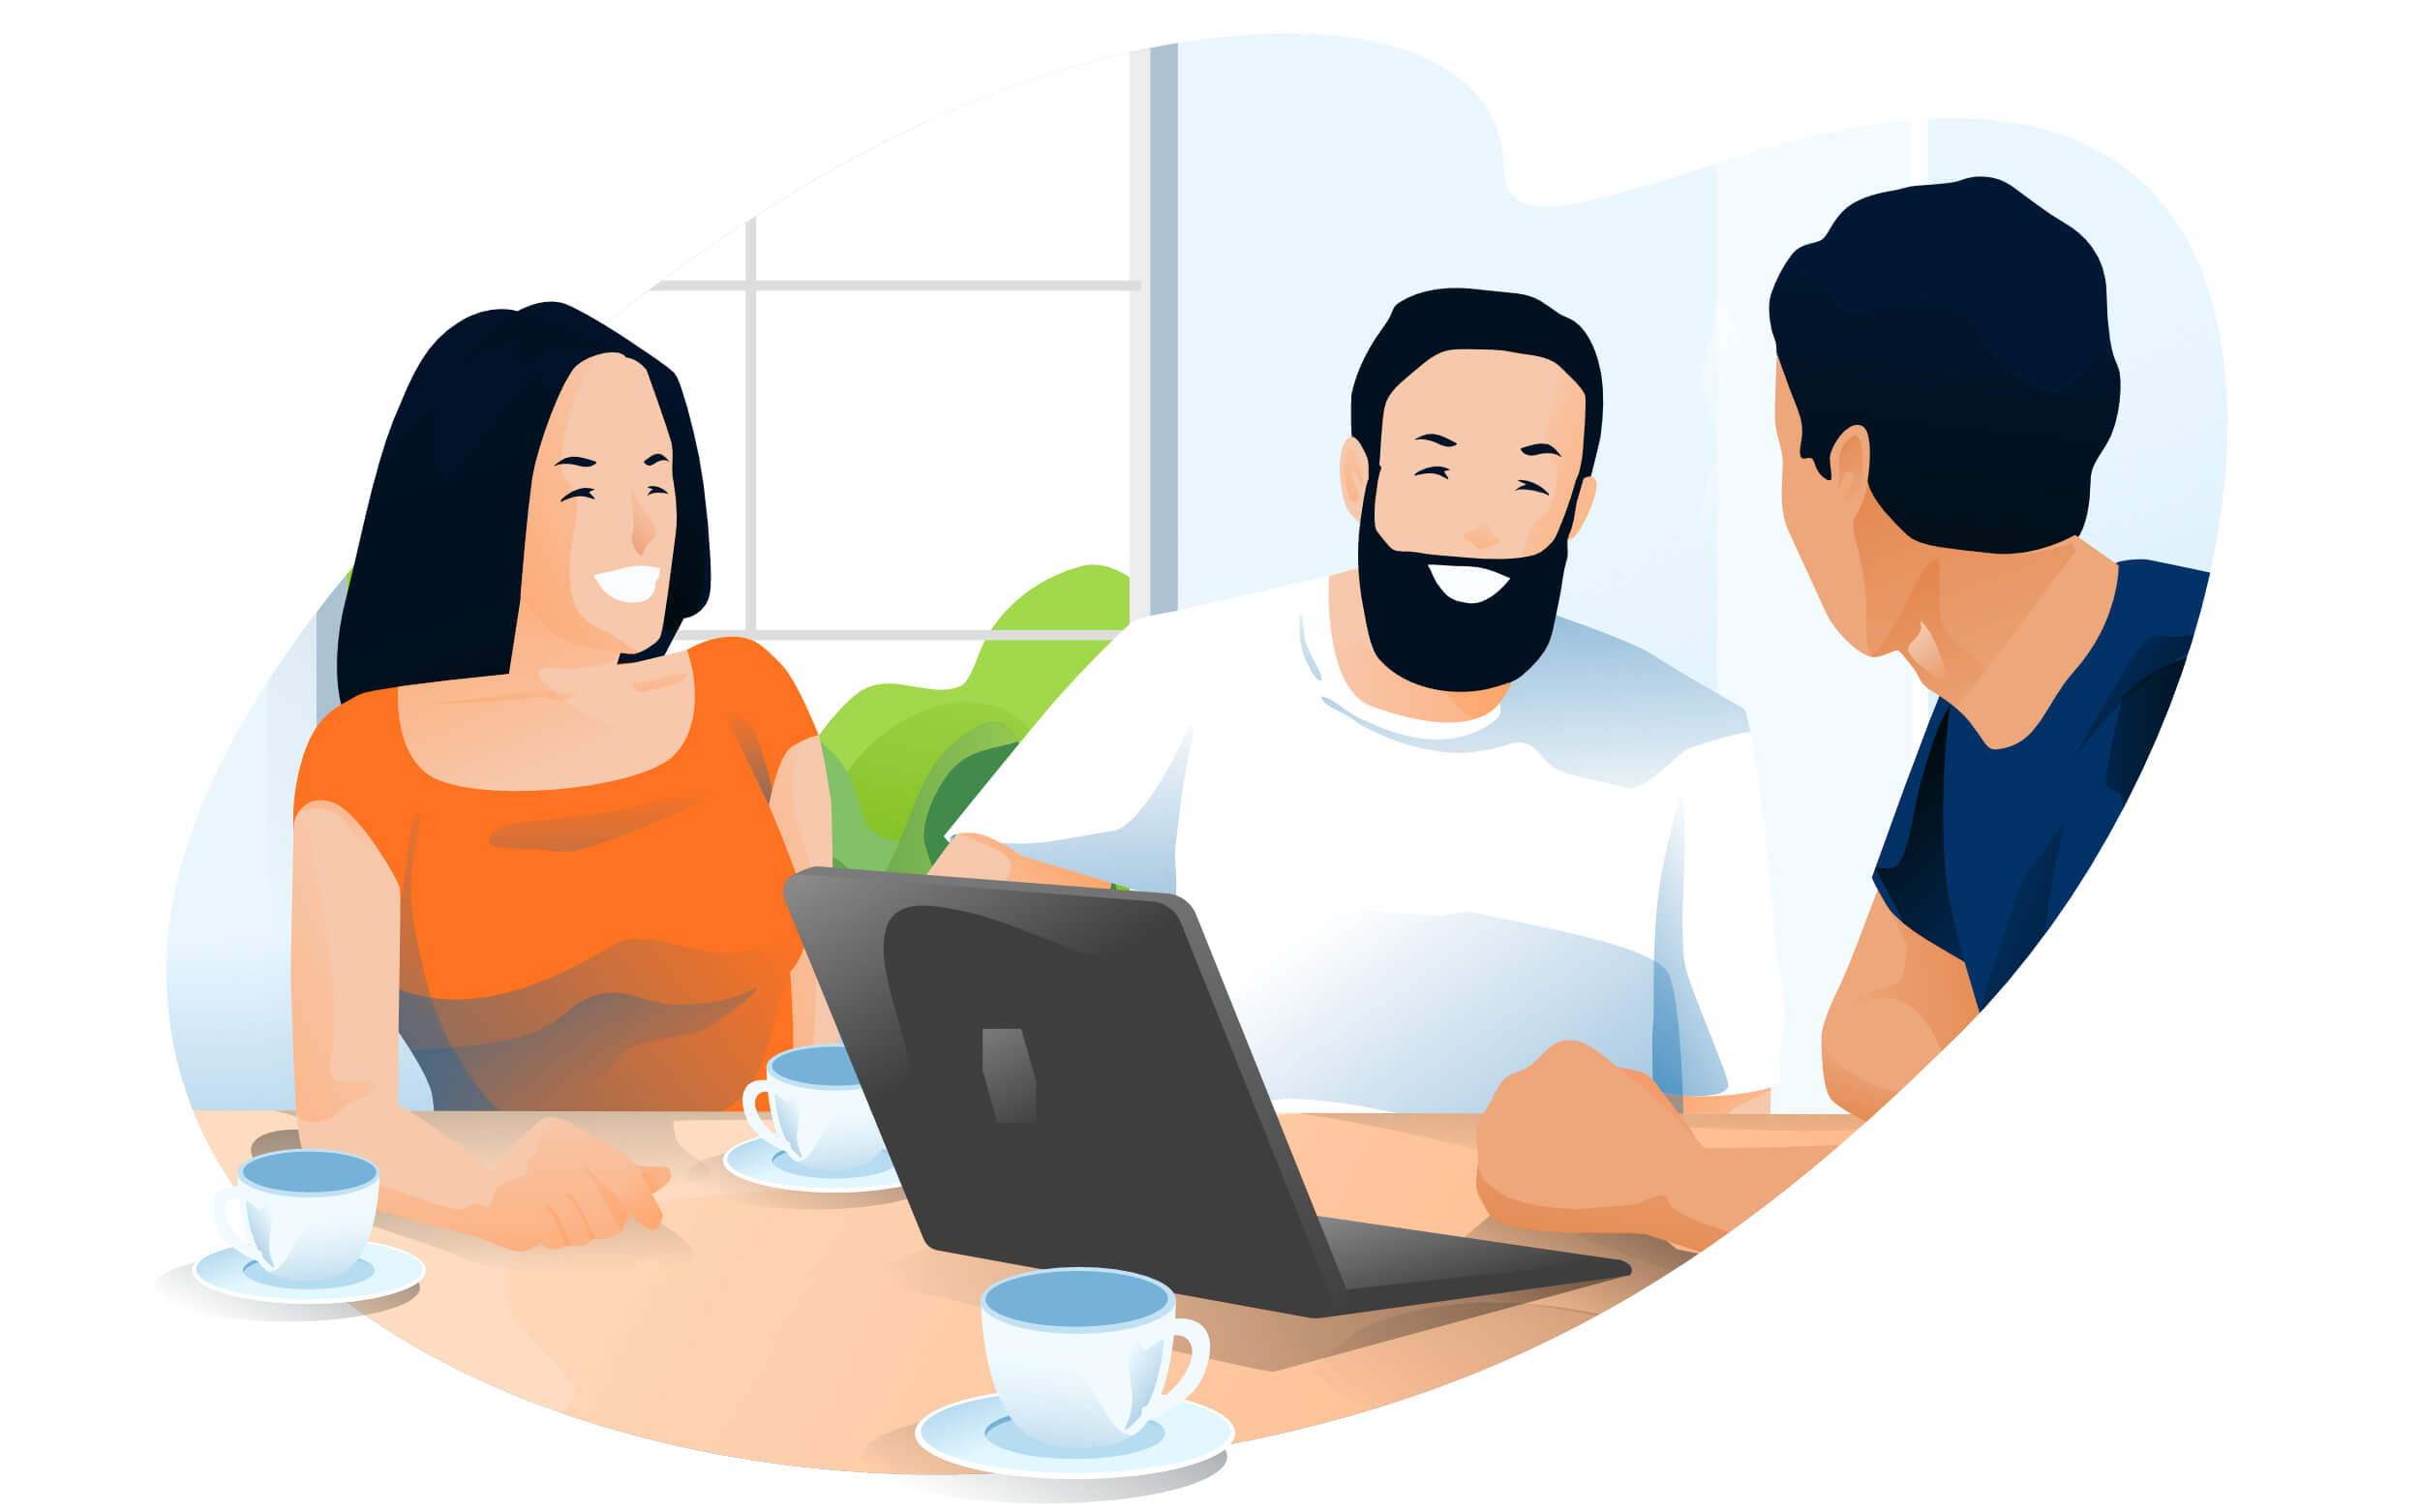 Illustration of three friends smiling around a laptop